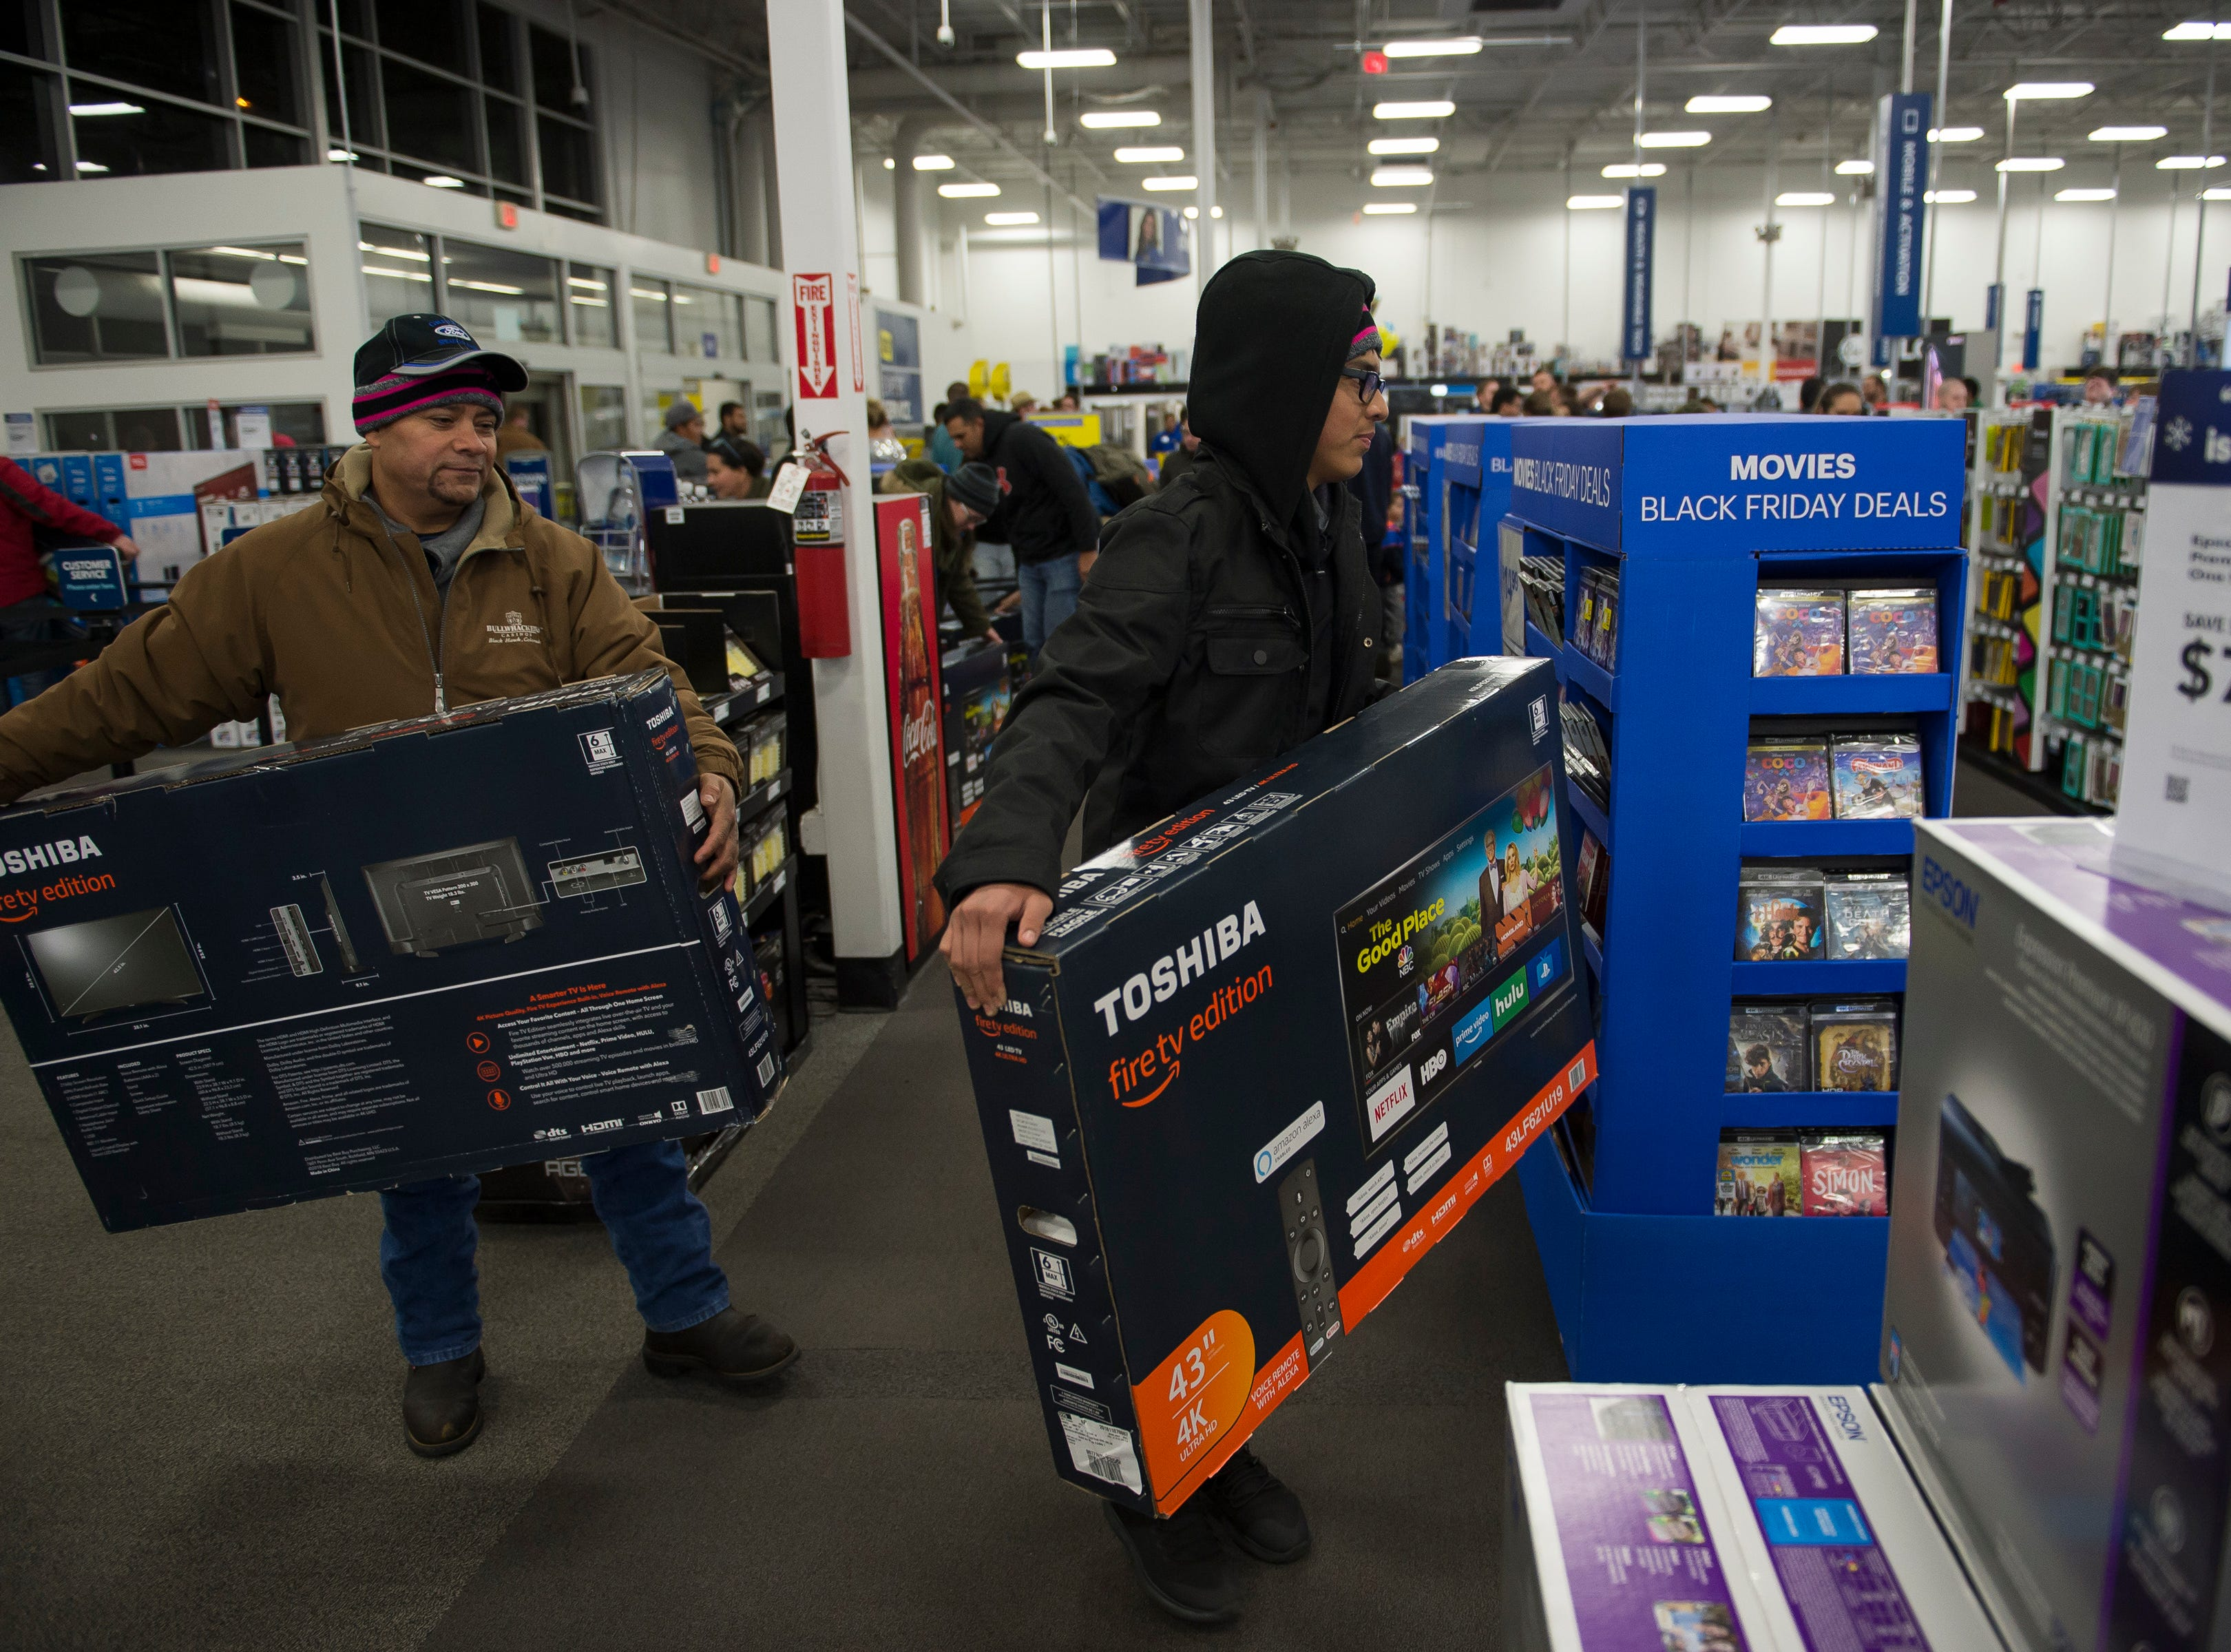 Father and son Jose and Saul Castaneda grab their door-buster deal televisions on Thursday, Nov. 22, 2018, at Best Buy in Fort Collins, Colo. The Castaneda came from Greeley and had been waiting in line outside Best Buy since about 7 a.m.